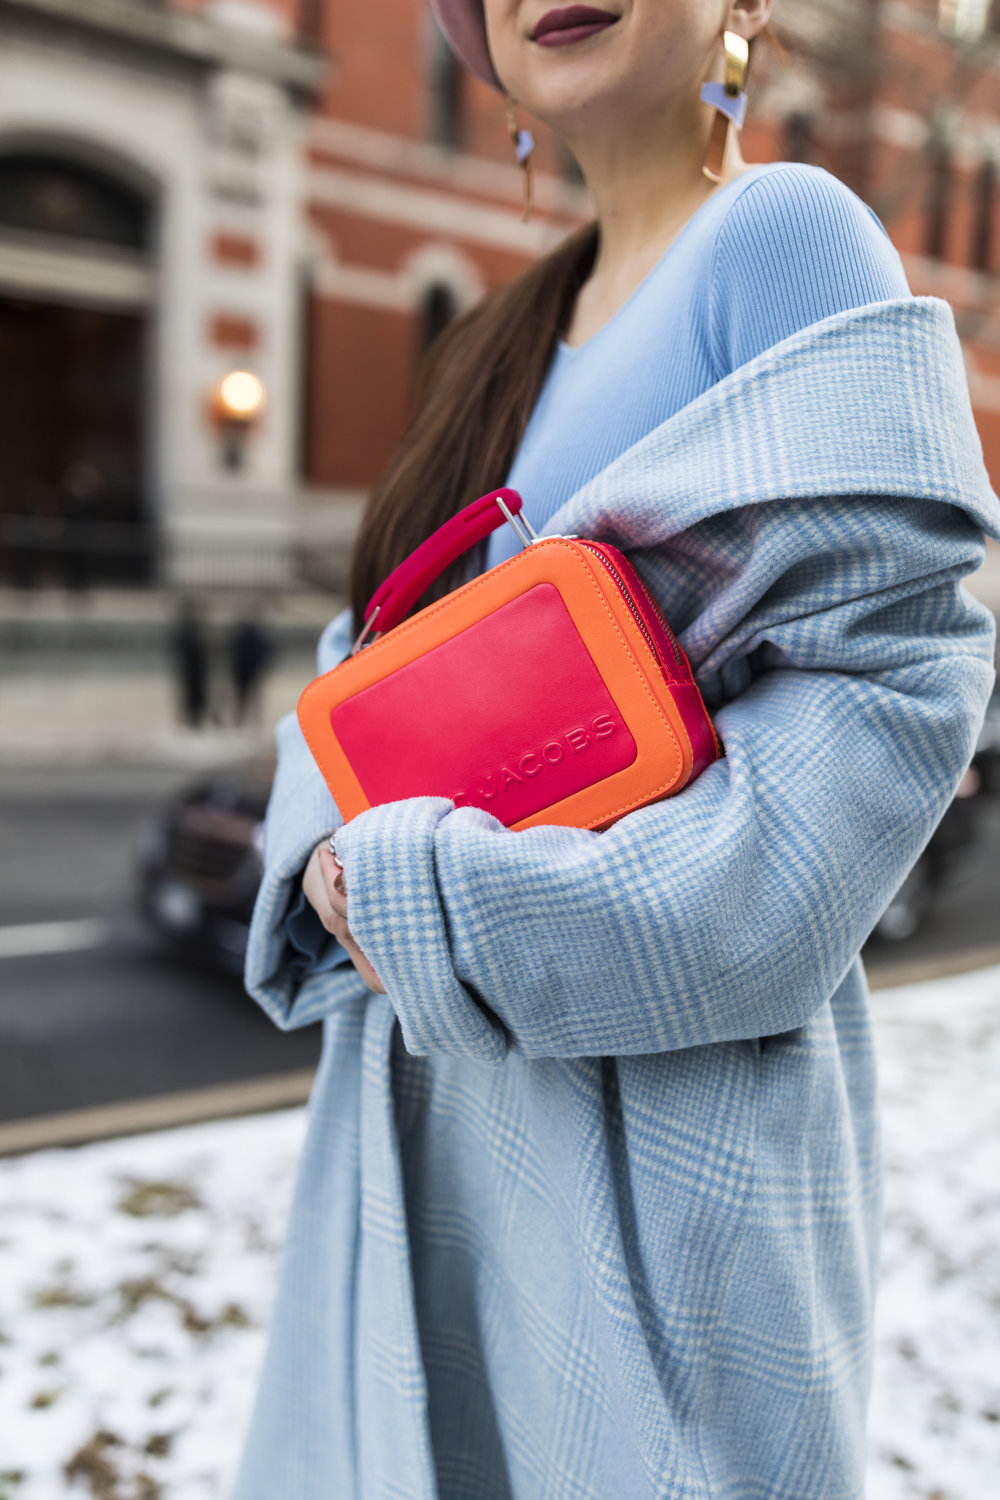 The neon pink and orange Marc Jacobs box bag. Photos by Ashley Gallerani.